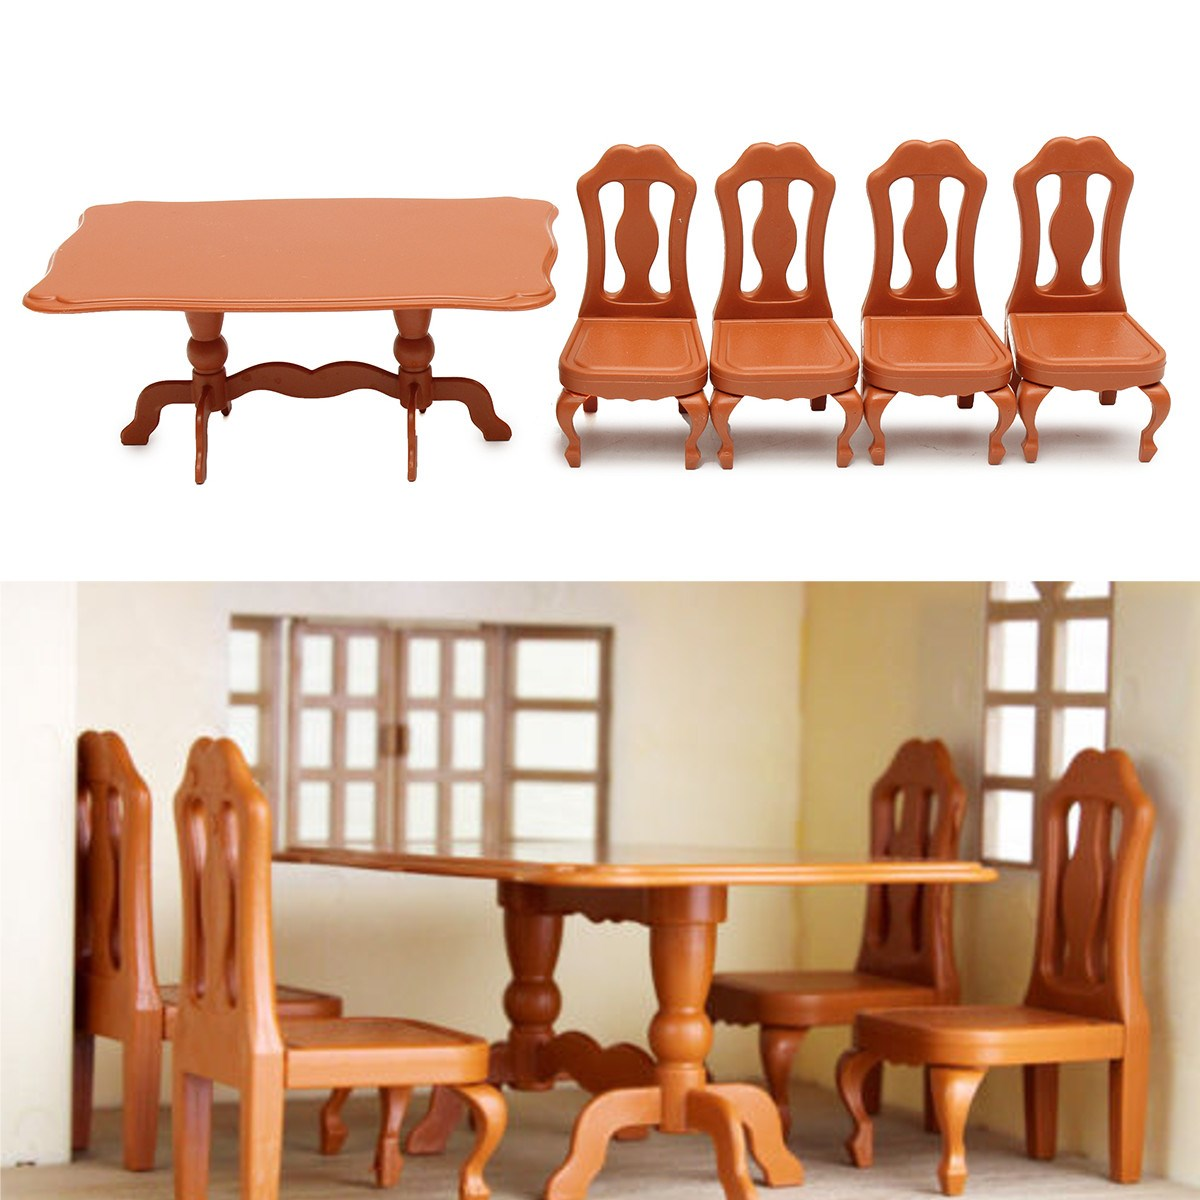 DIY Miniatura Furniture Dining Tables Chairs Sets For Mini Doll House Miniatures Furniture Toys Gifts For Children Adult image